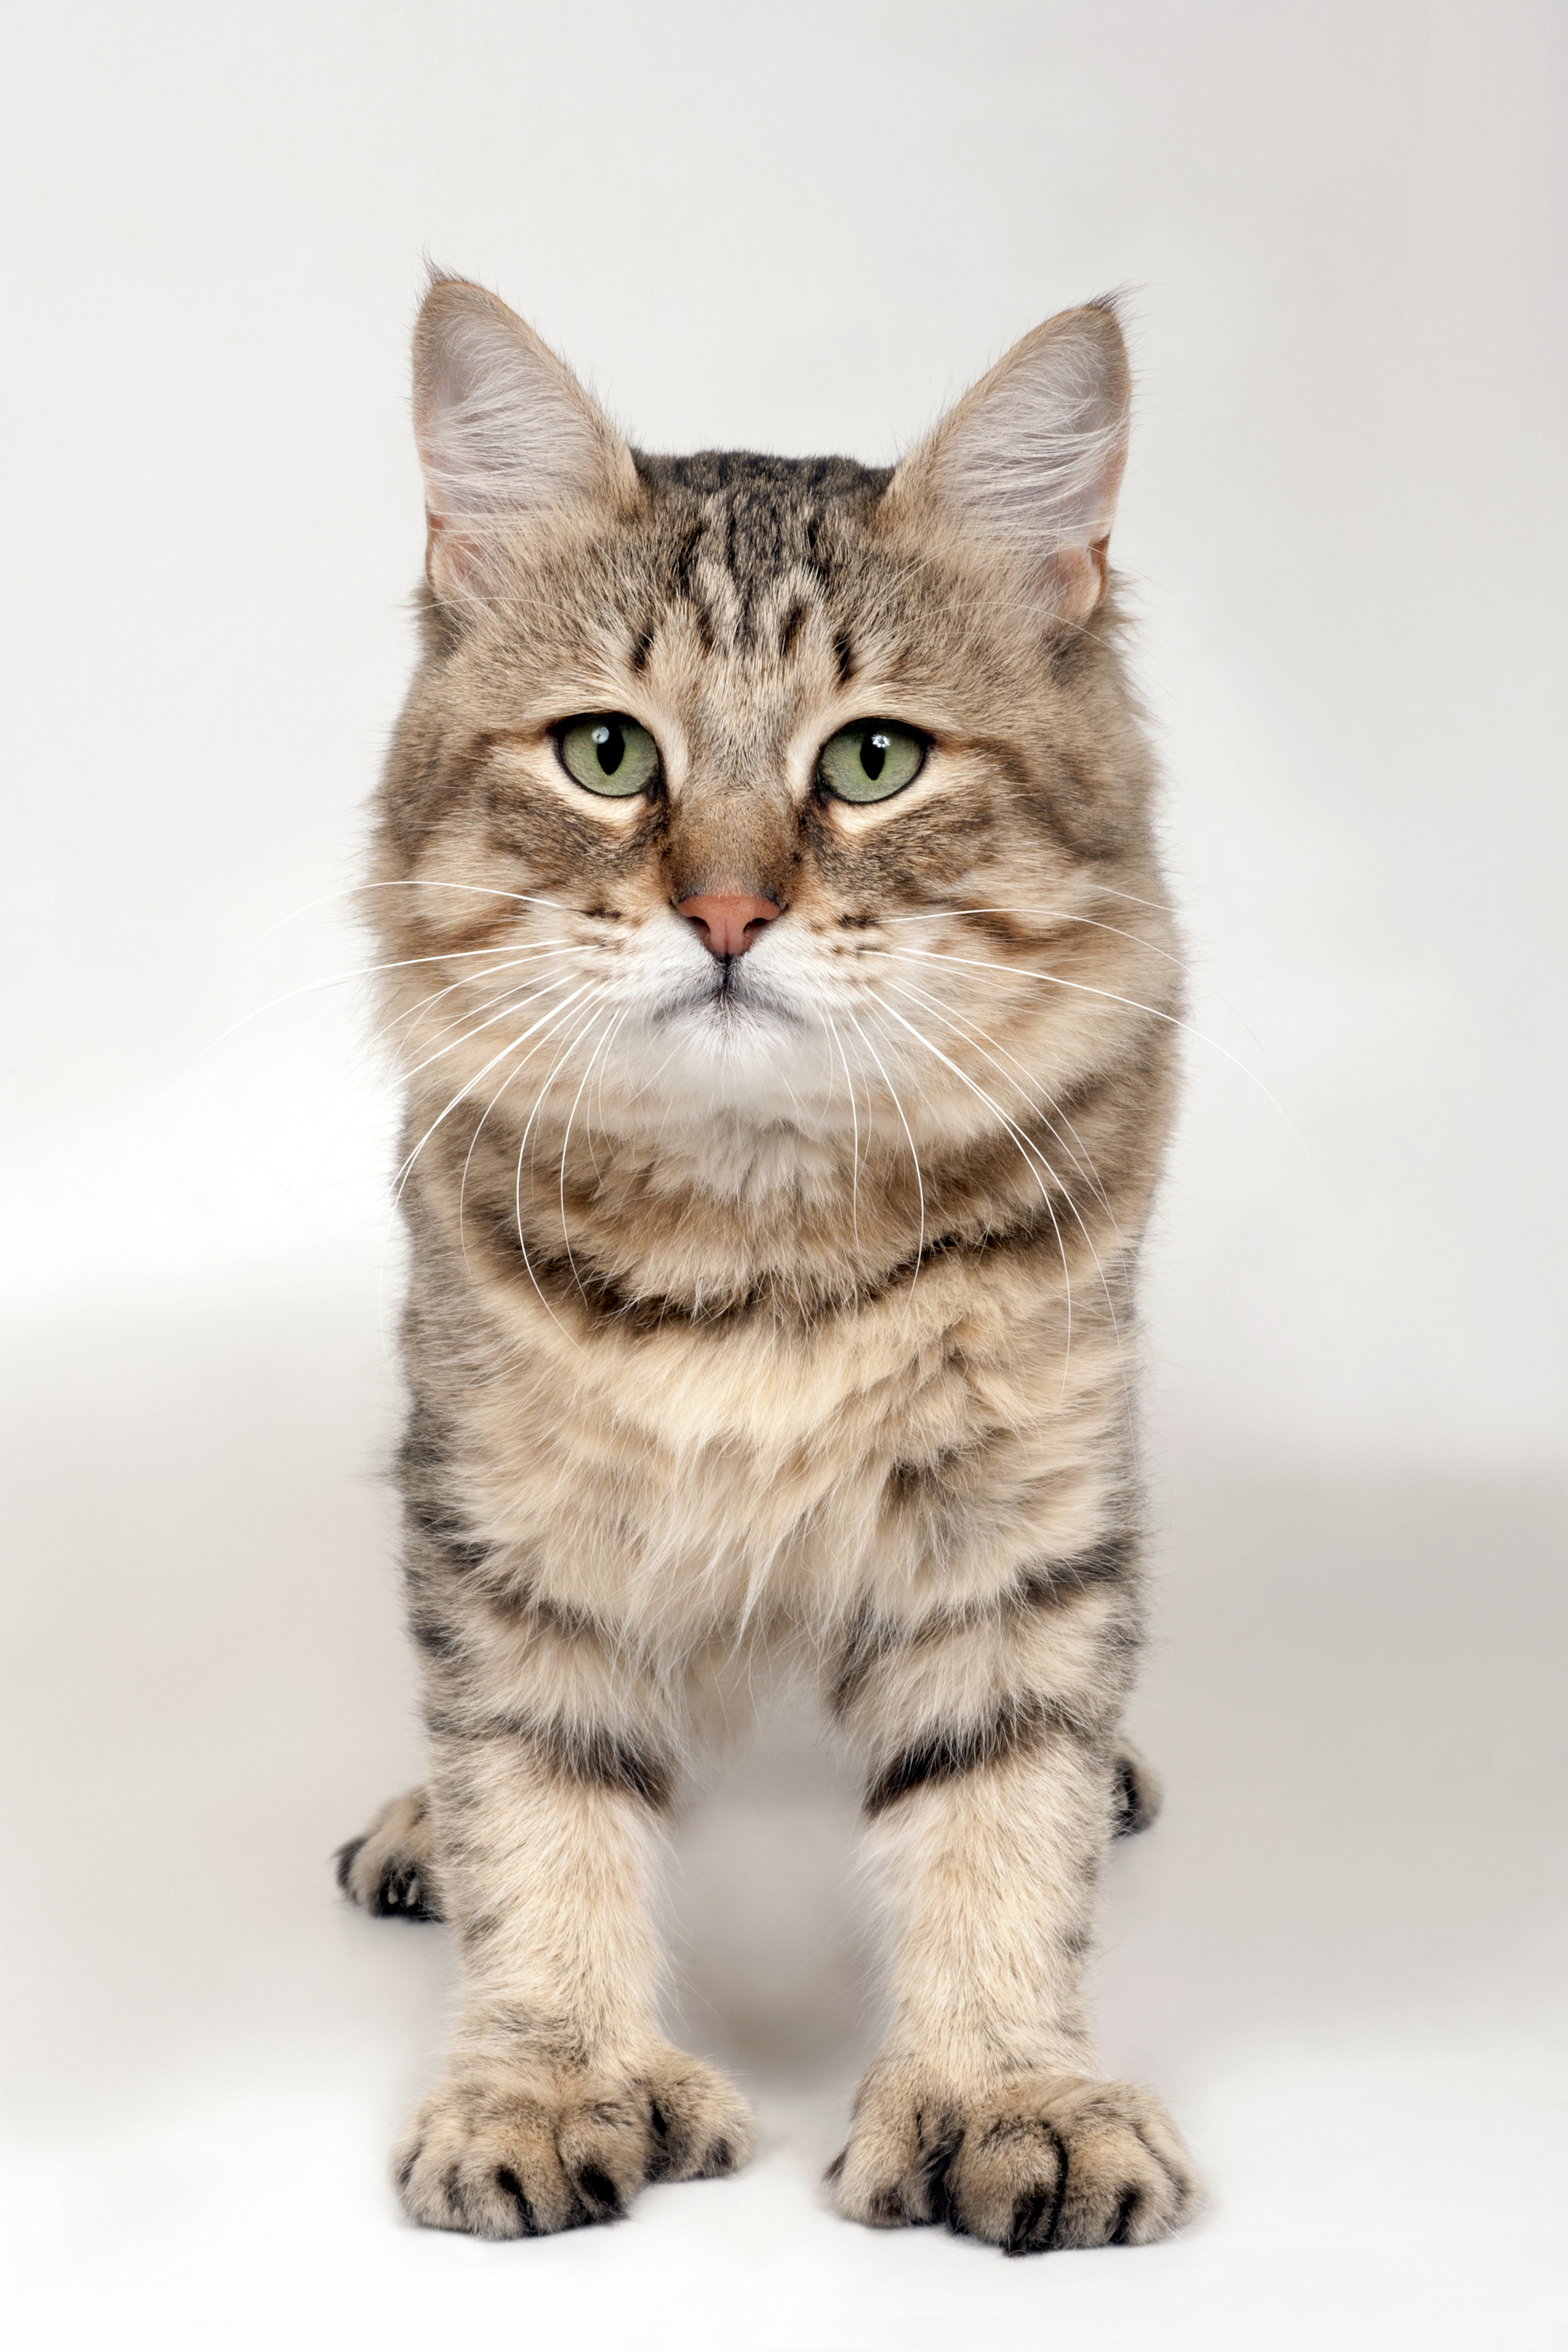 Pixie-Bob Cat Breed Pictures